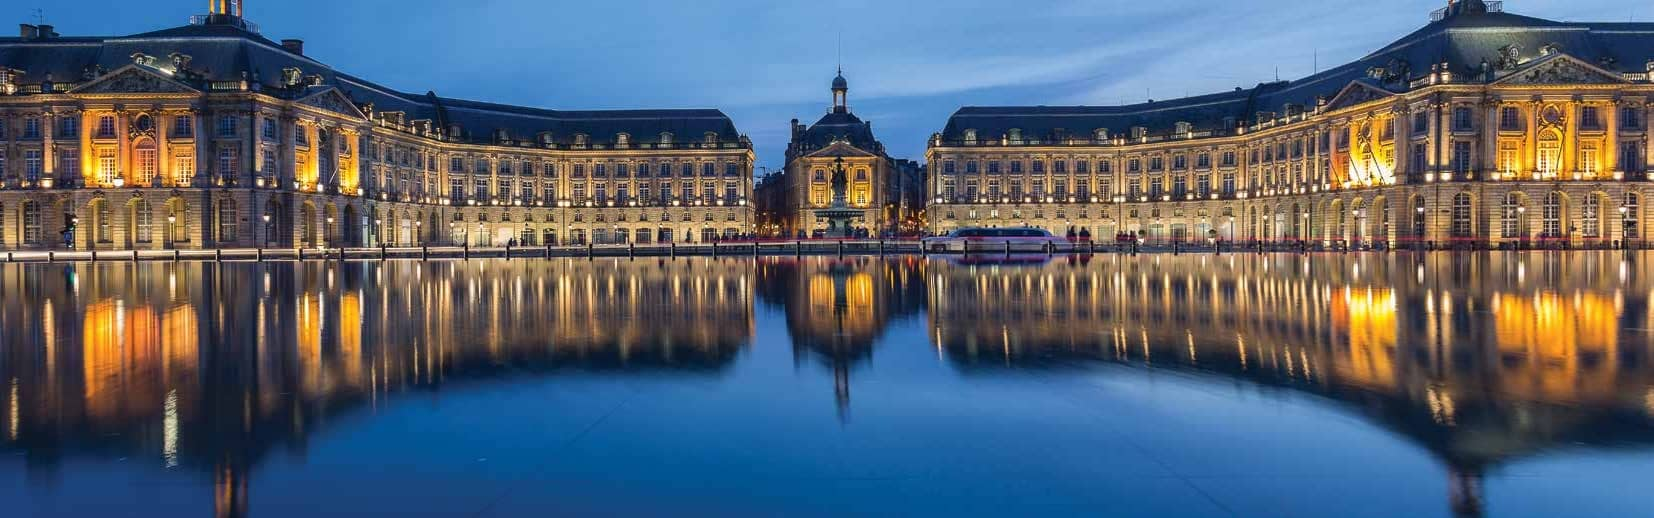 10 Things Not To Miss In Bordeaux